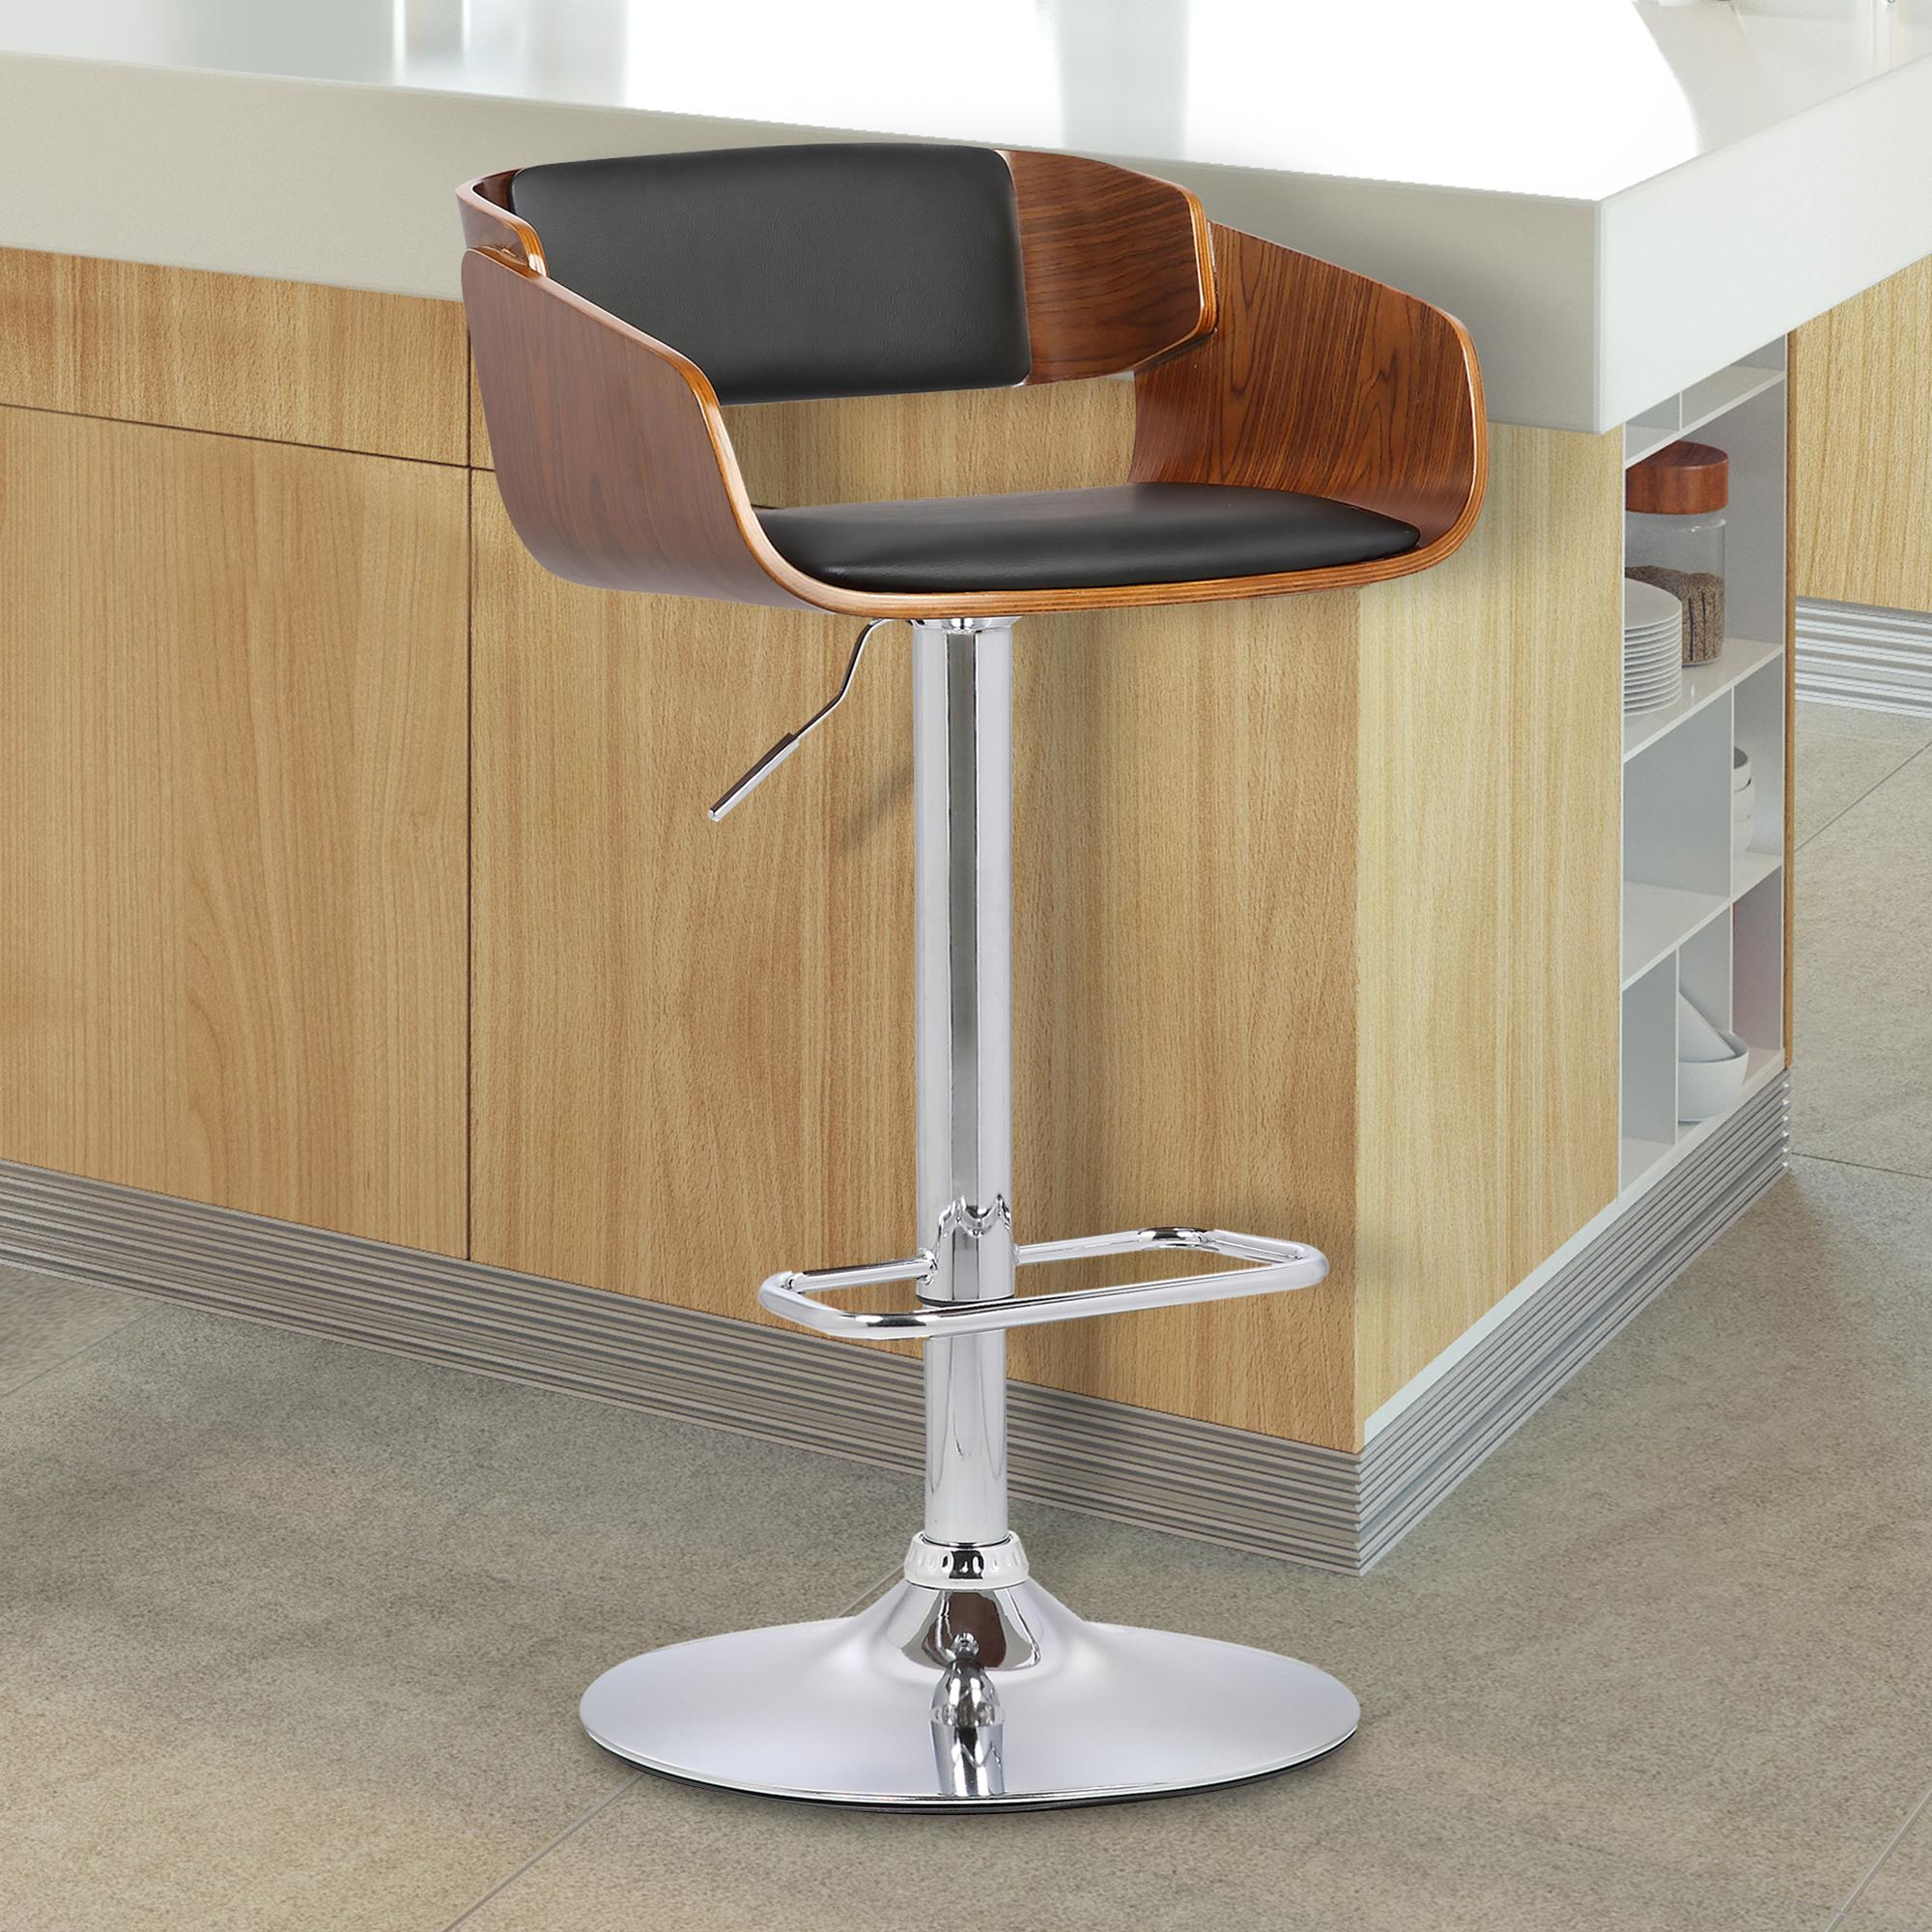 Armen Living Jenny Mid-Century Adjustable Swivel Barstool in Chrome finish with Black Faux Leather and Walnut Wood